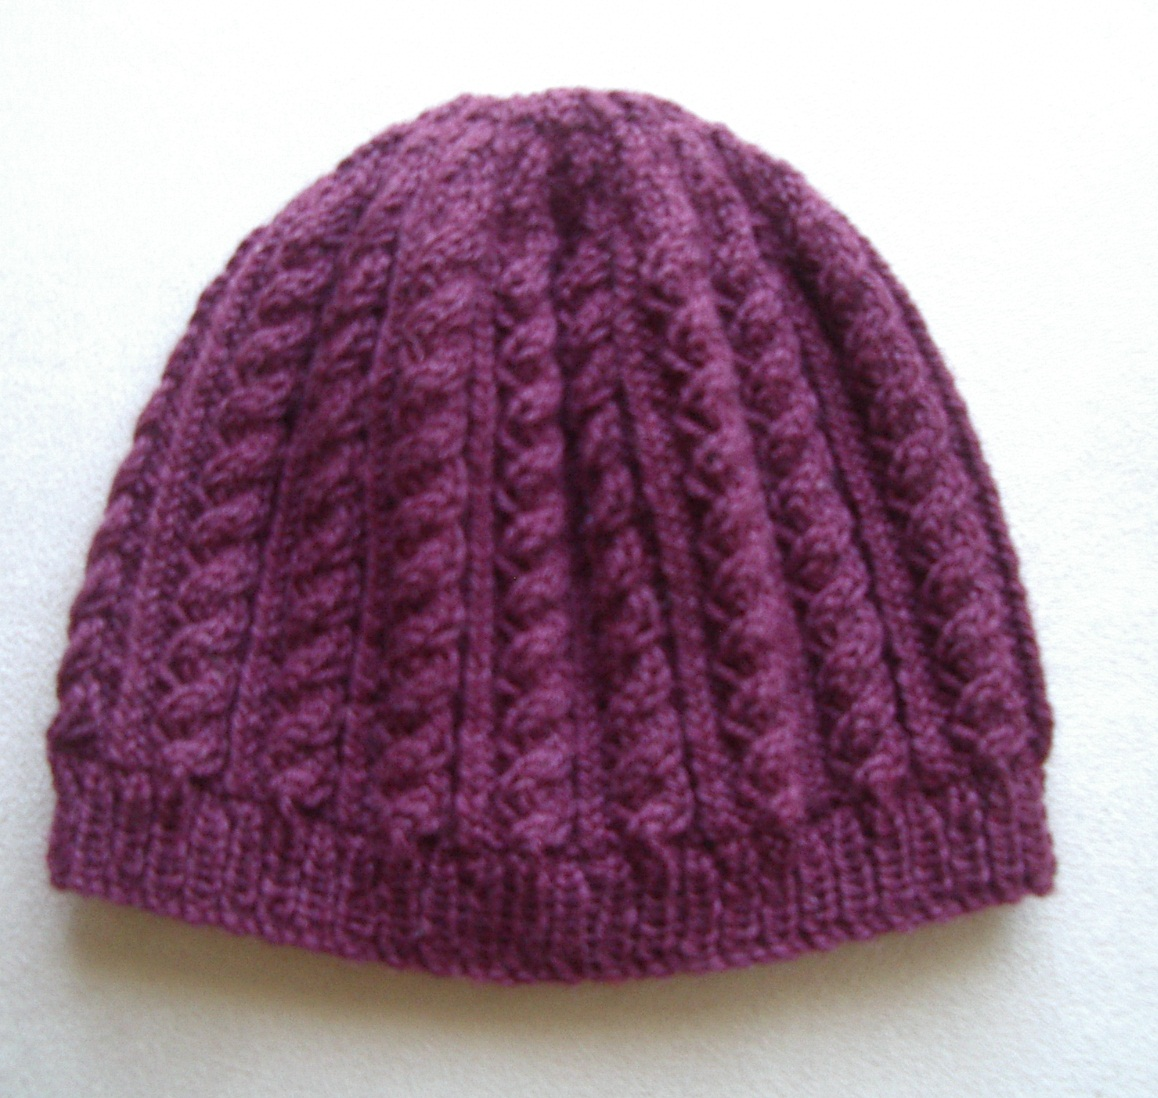 Easy Bootie Knitting Pattern : Knitting Patterns Online - Knitted Beanie, Scarf and Headband Patterns